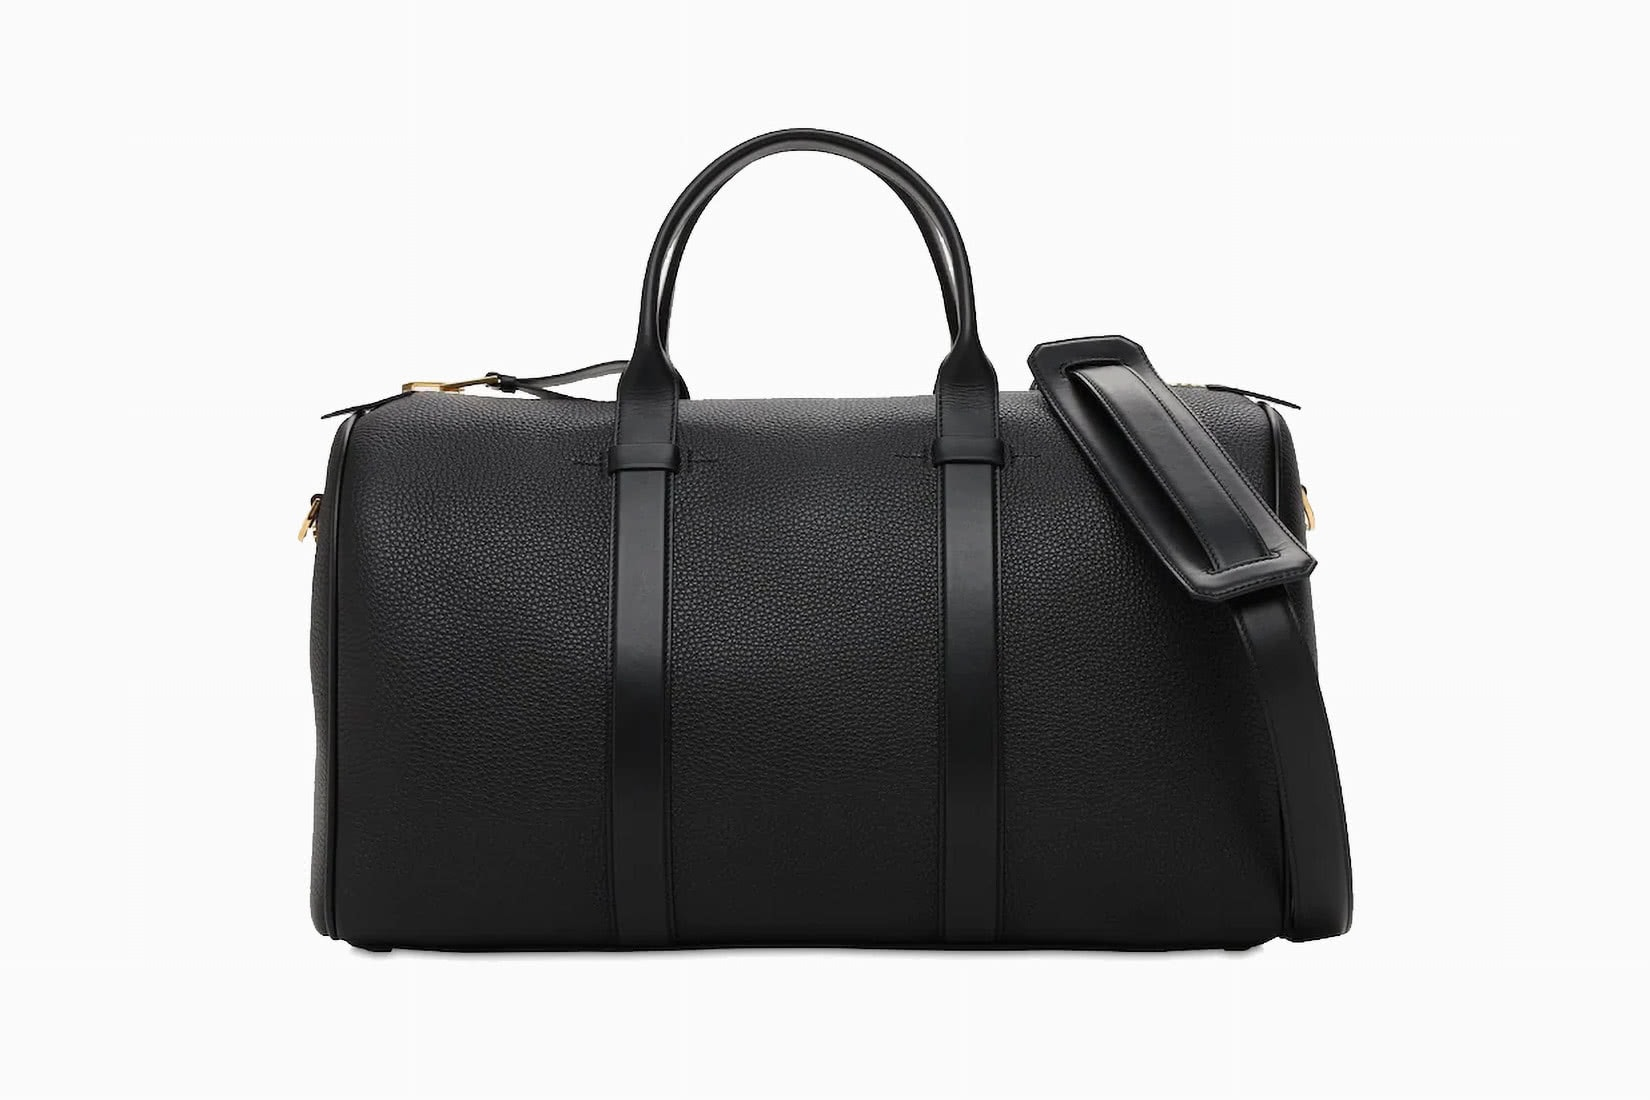 best men gym bag leather tom ford review - Luxe Digital